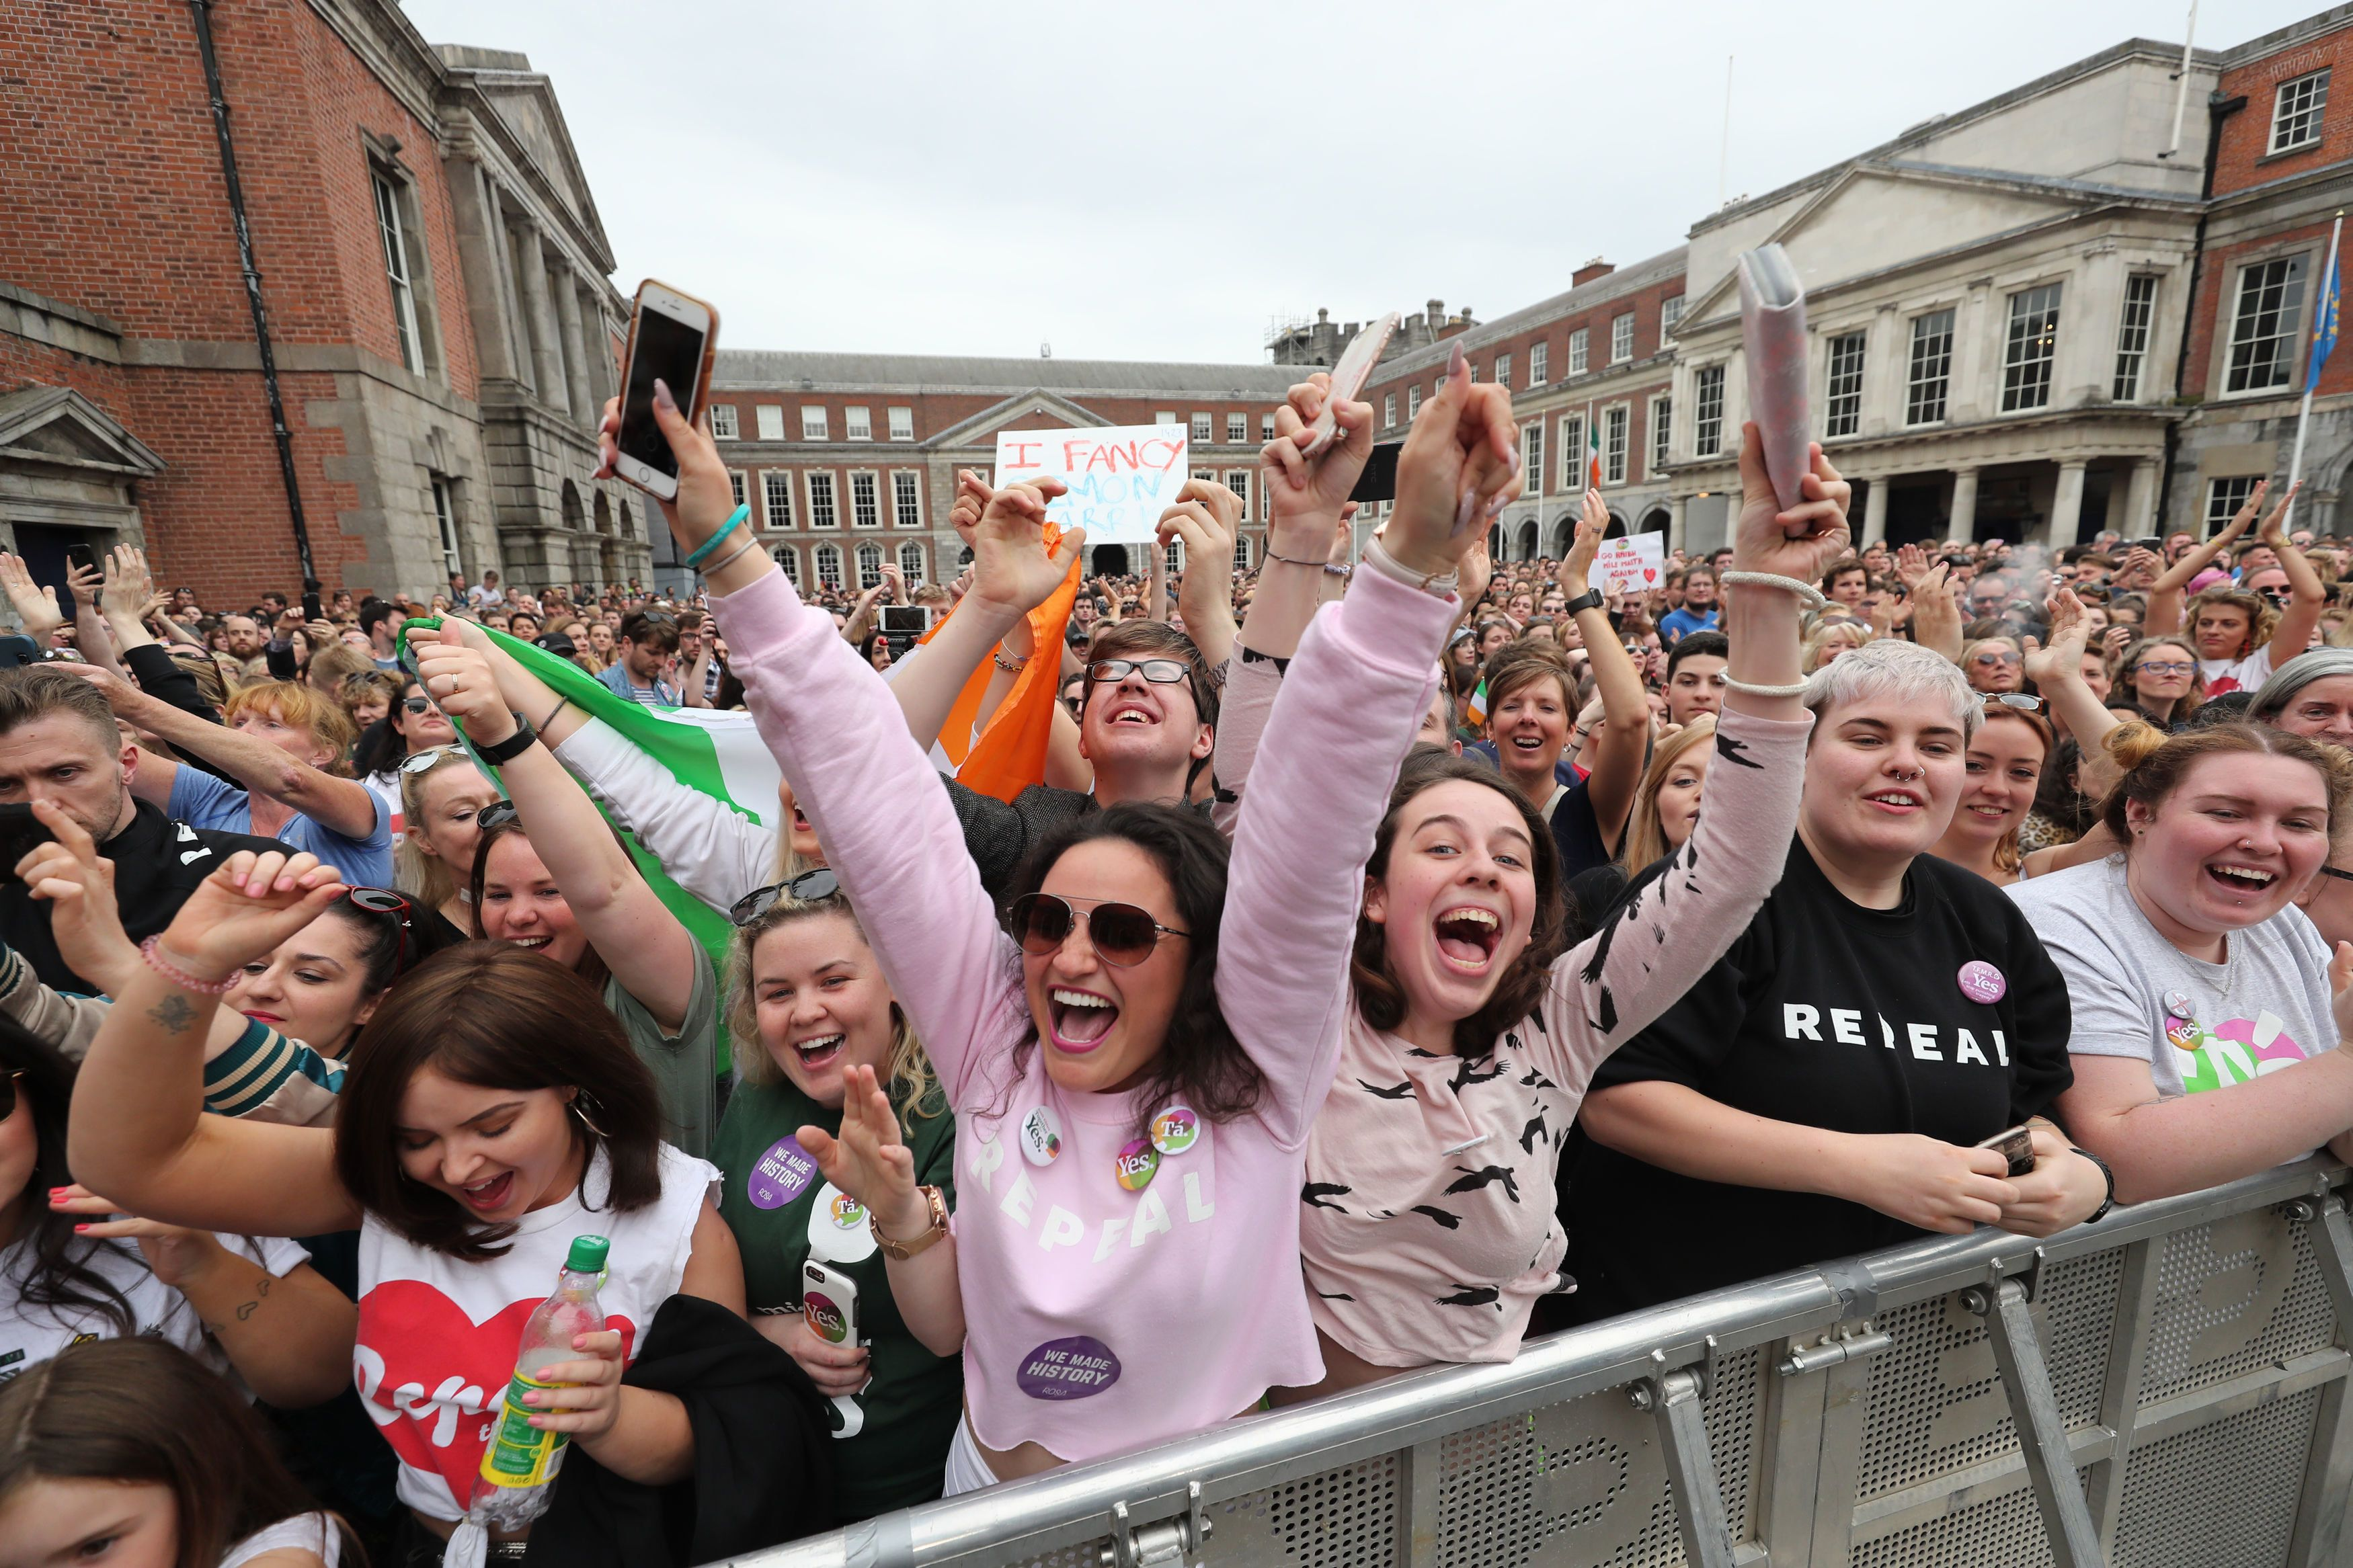 Irish Voters to Decide Whether to Change Abortion Law